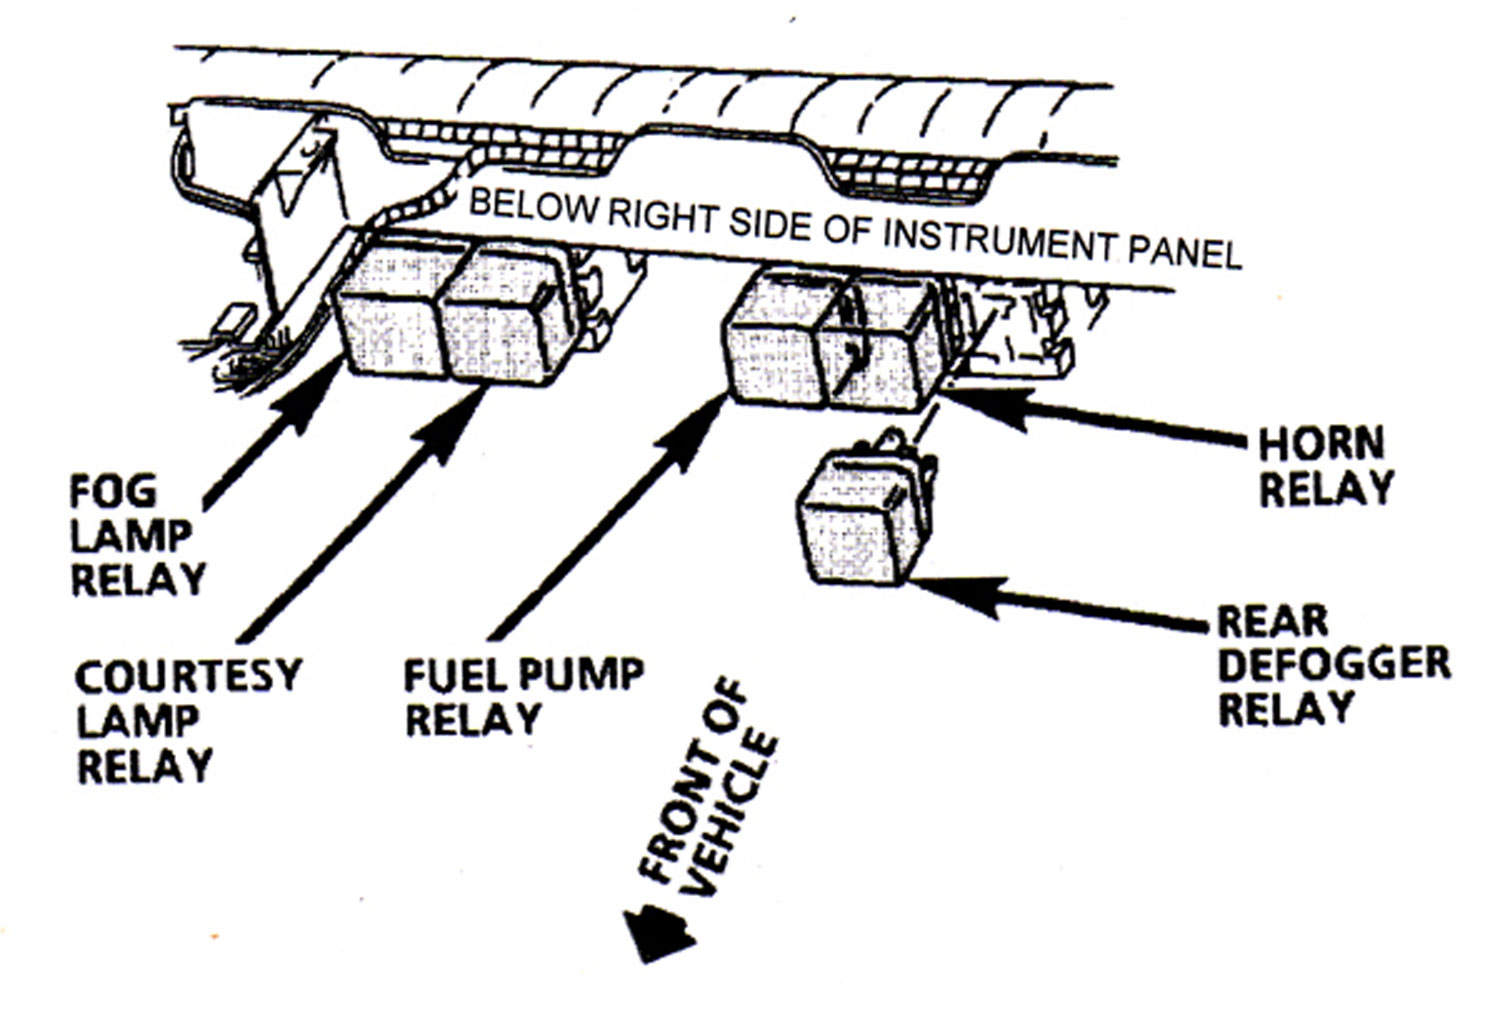 1986 Corvette Fuel Rail Diagram Not Lossing Wiring C5 Diagrams Replacing A C 4 Pump Grumpys Performance Garage Rh Grumpysperformance Com 1957 Injection 1998 System